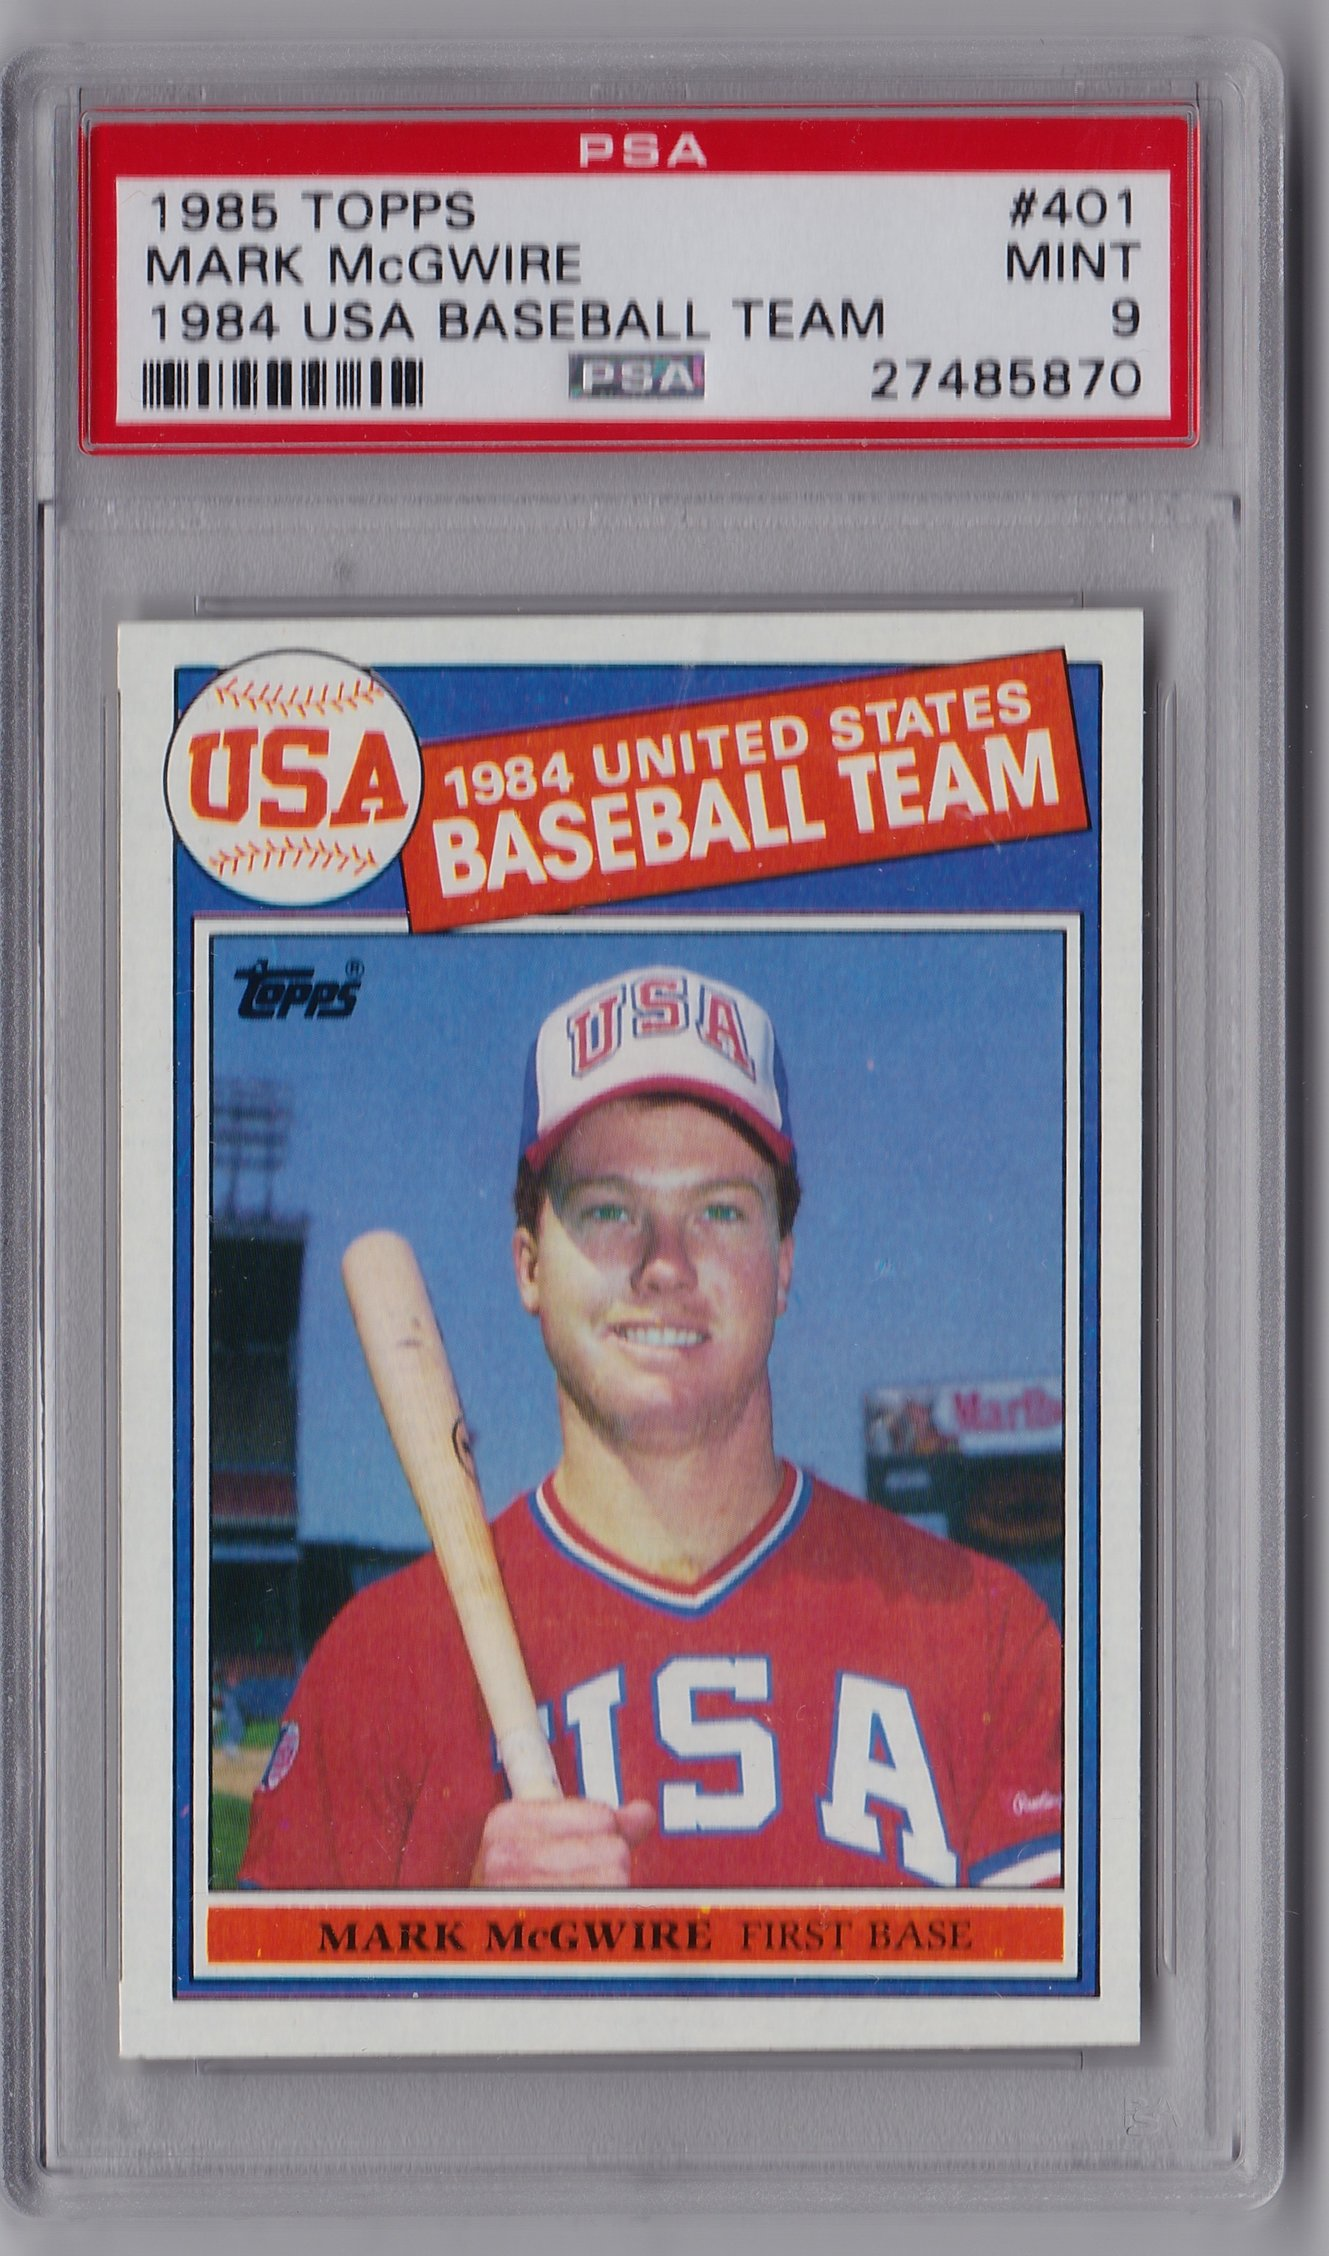 Sell My 1985 Topps Mcgwire Psa 10 Or Hold Onto It Collectors Universe